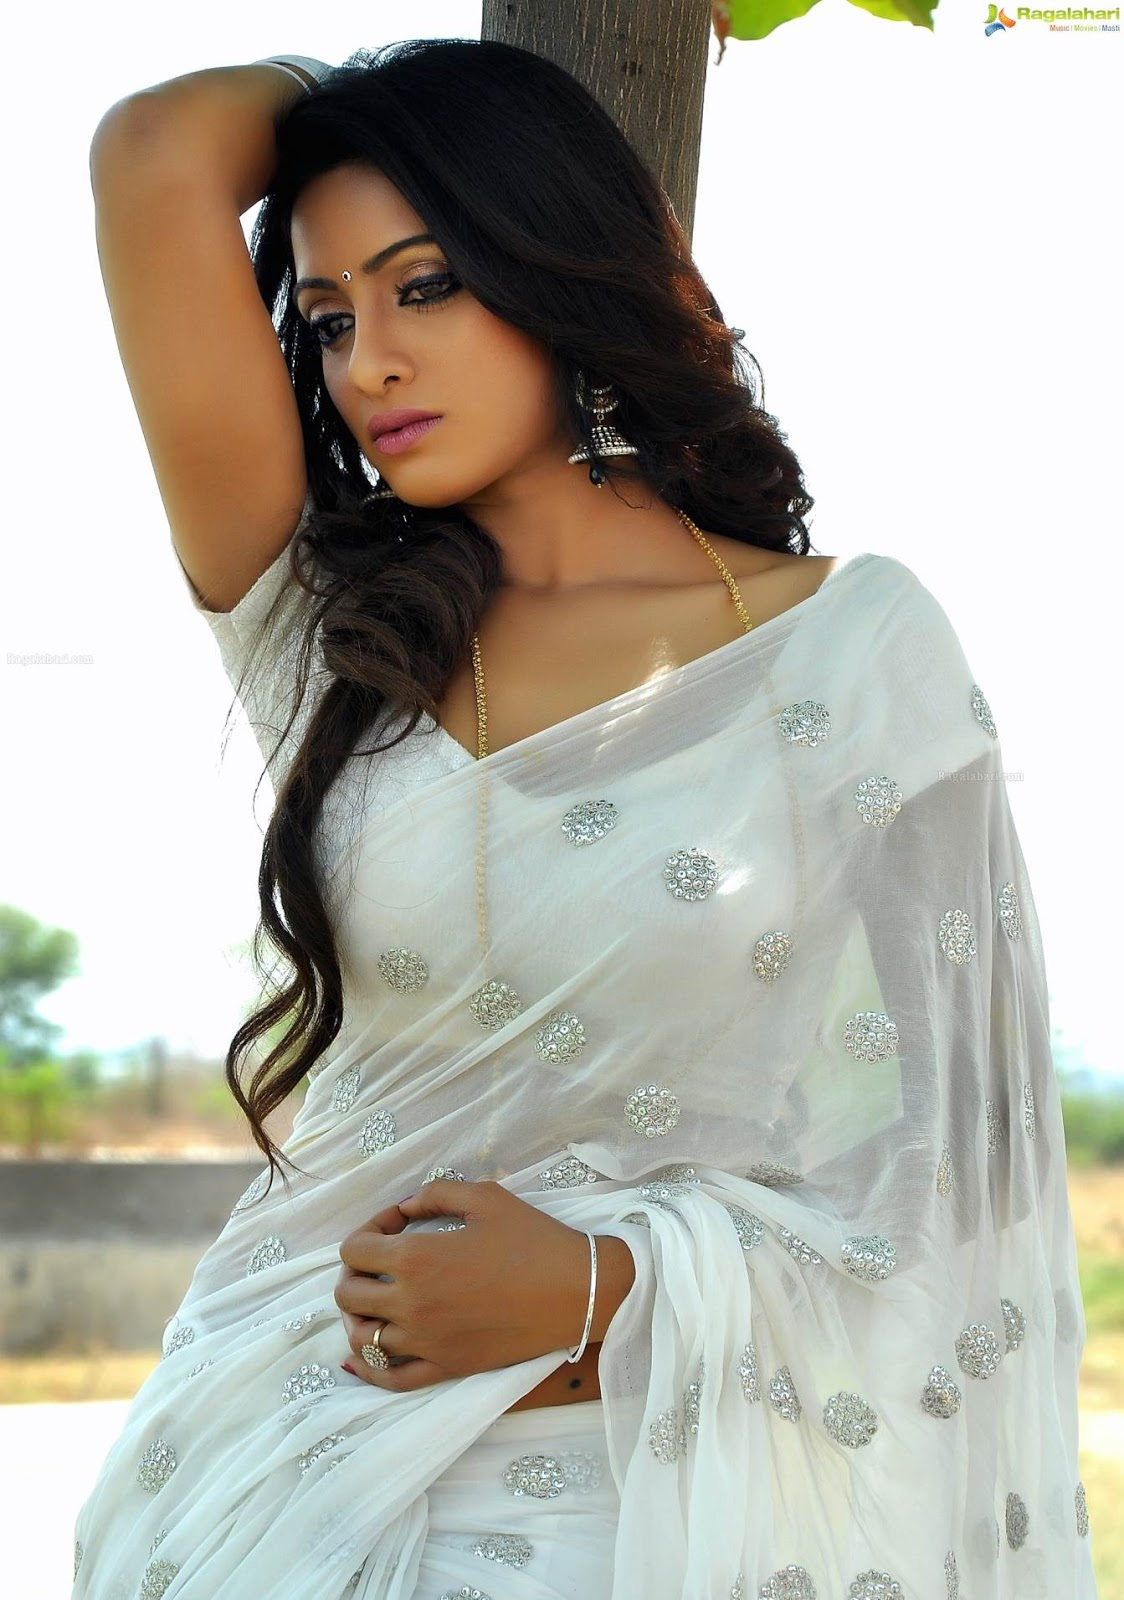 telugu tv anchor actress udaya bhanu hot latest photos